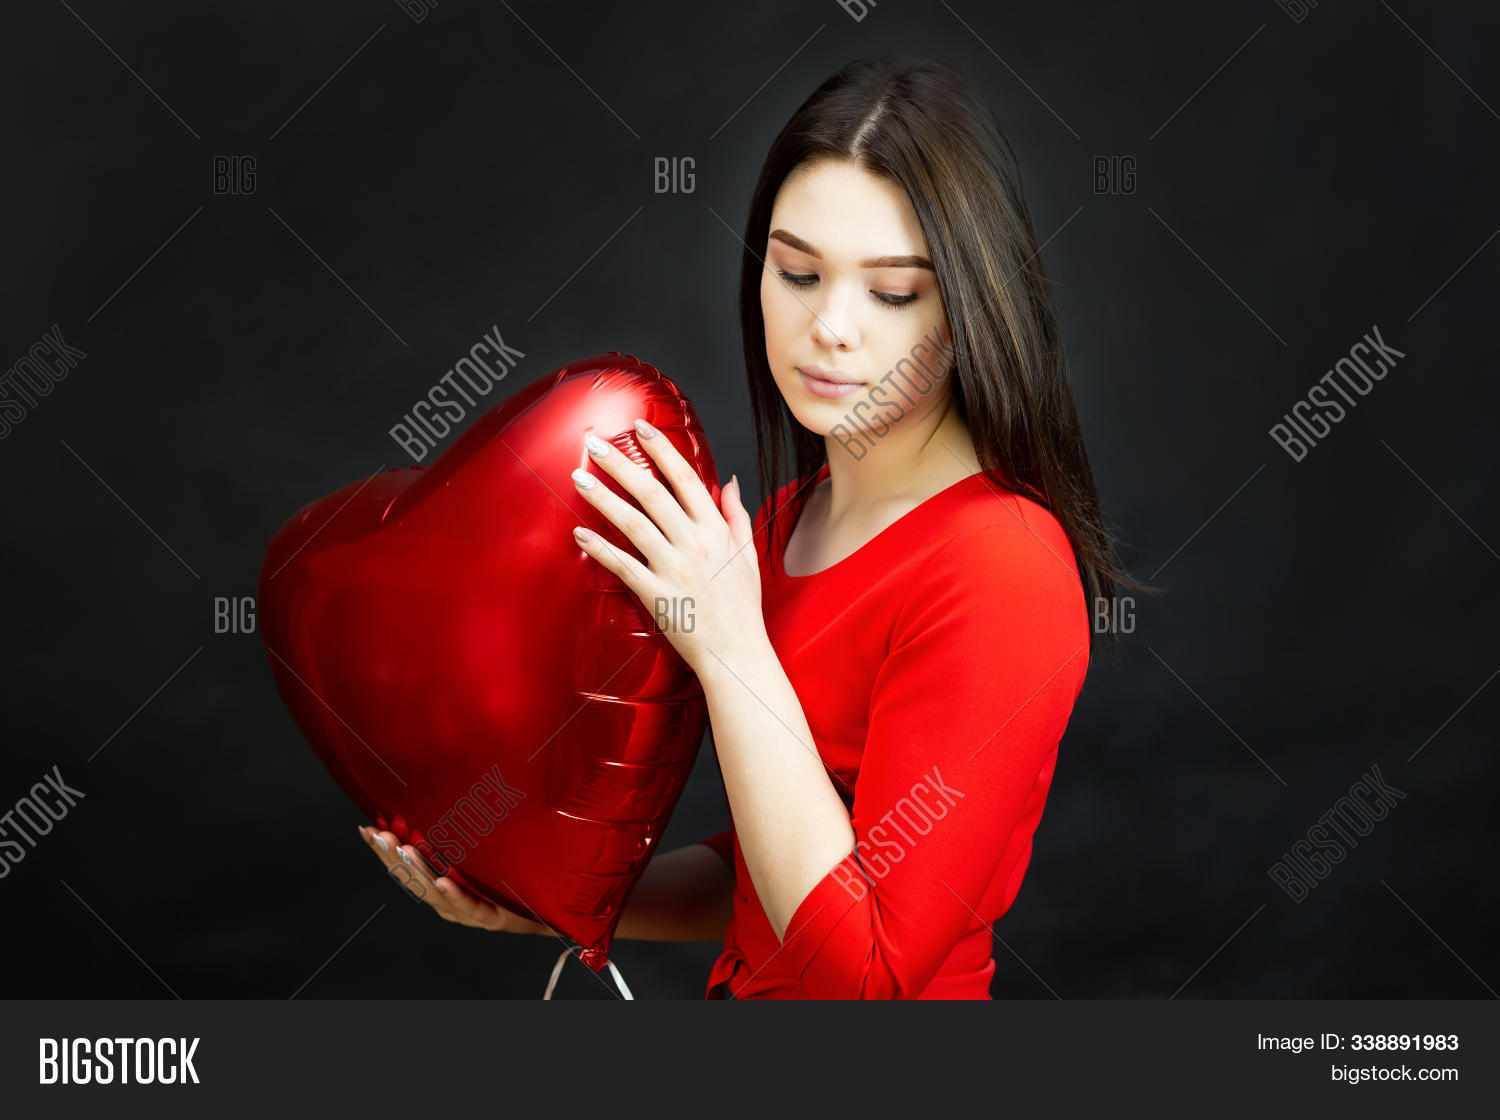 Sad Girl Broken Heart Image Photo Free Trial Bigstock